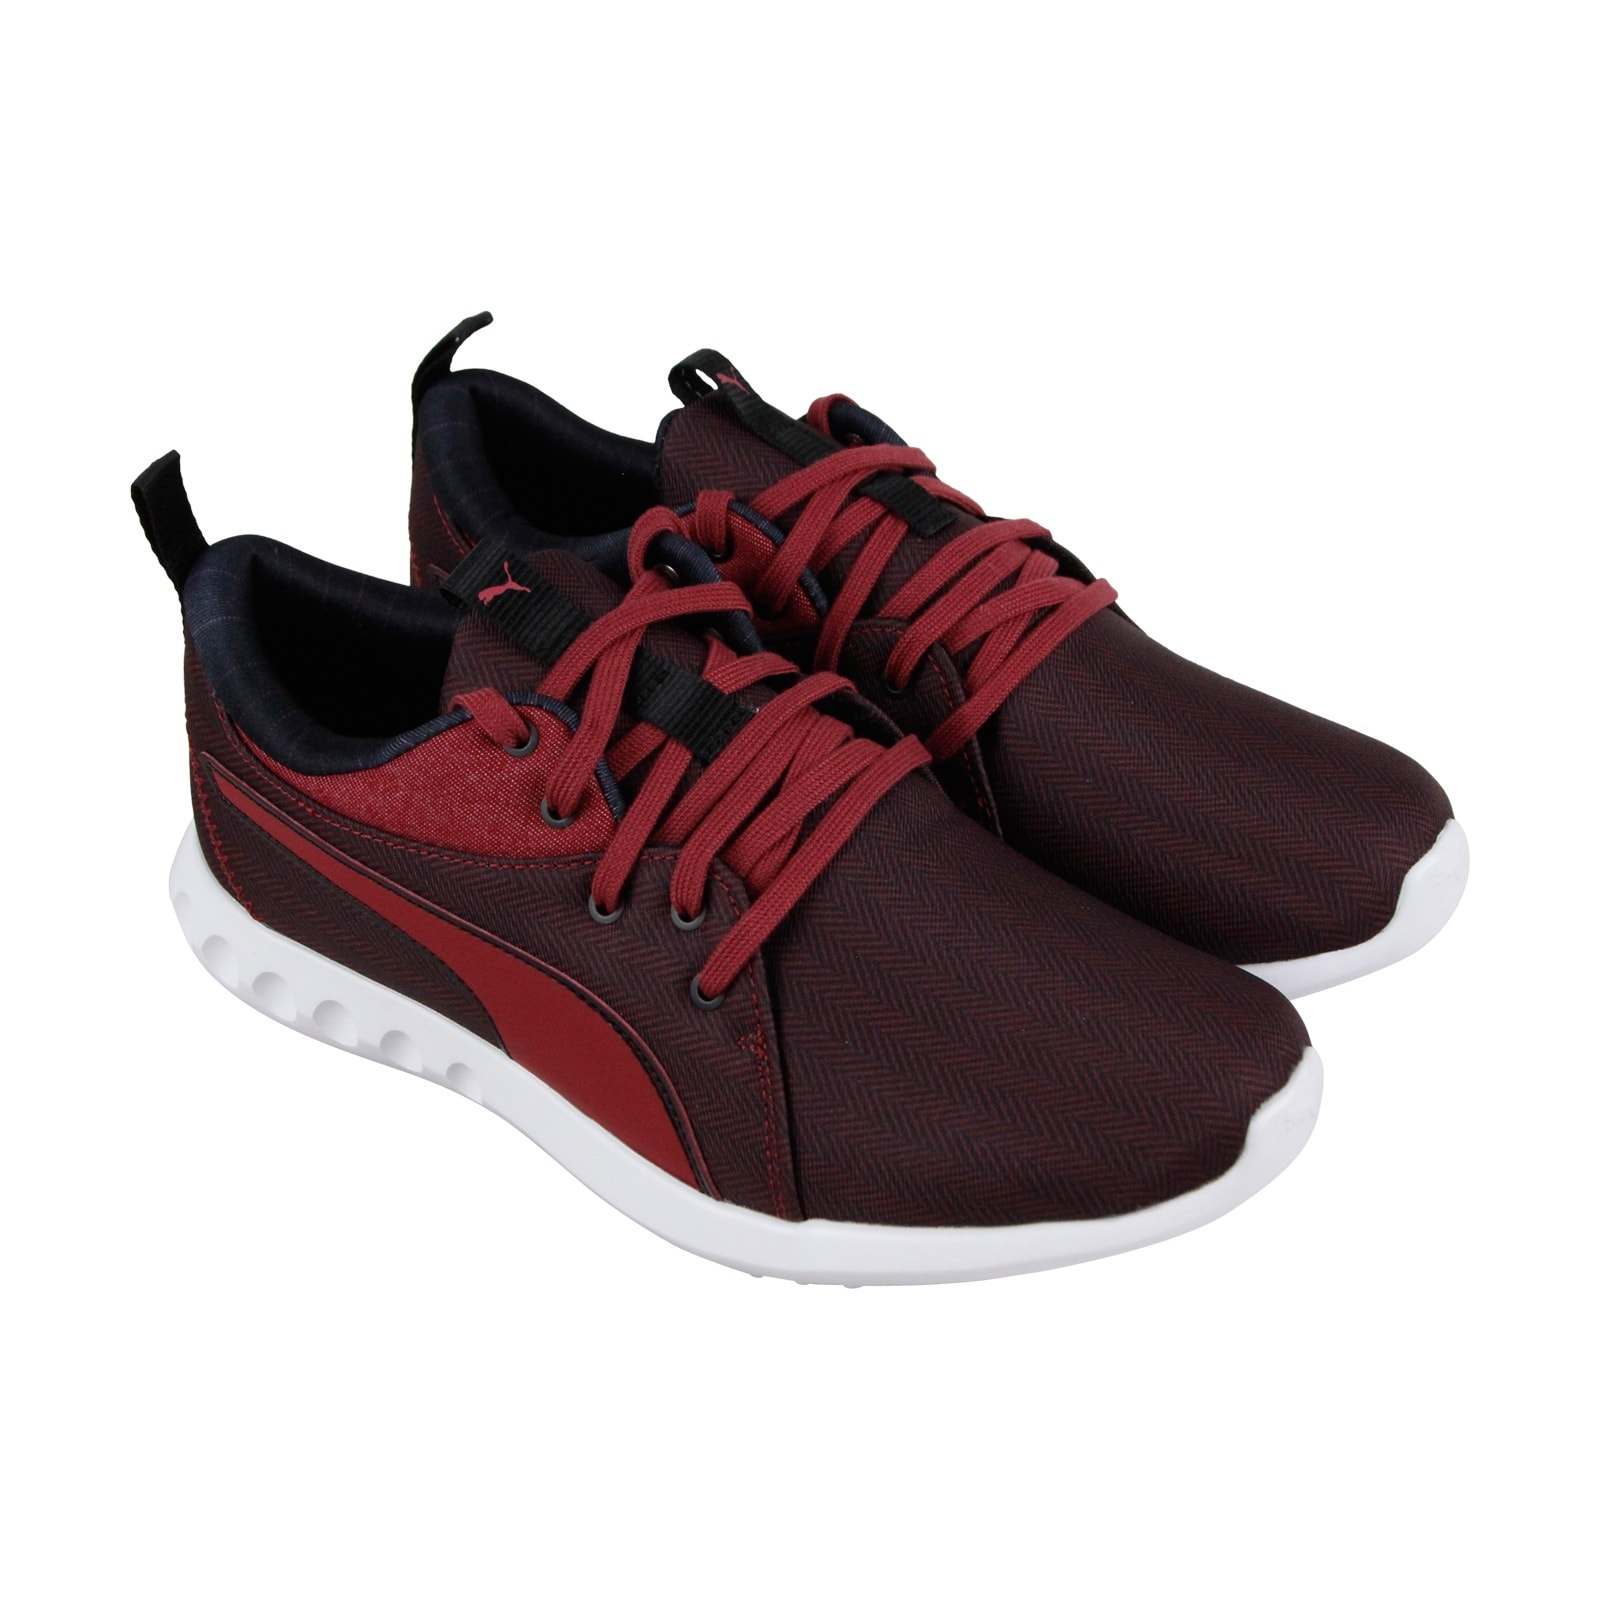 d3680f69c9 Shop Puma Carson 2 Menswear Mens Red Textile Athletic Lace Up Running Shoes  - Free Shipping On Orders Over  45 - Overstock - 27193412 - 7